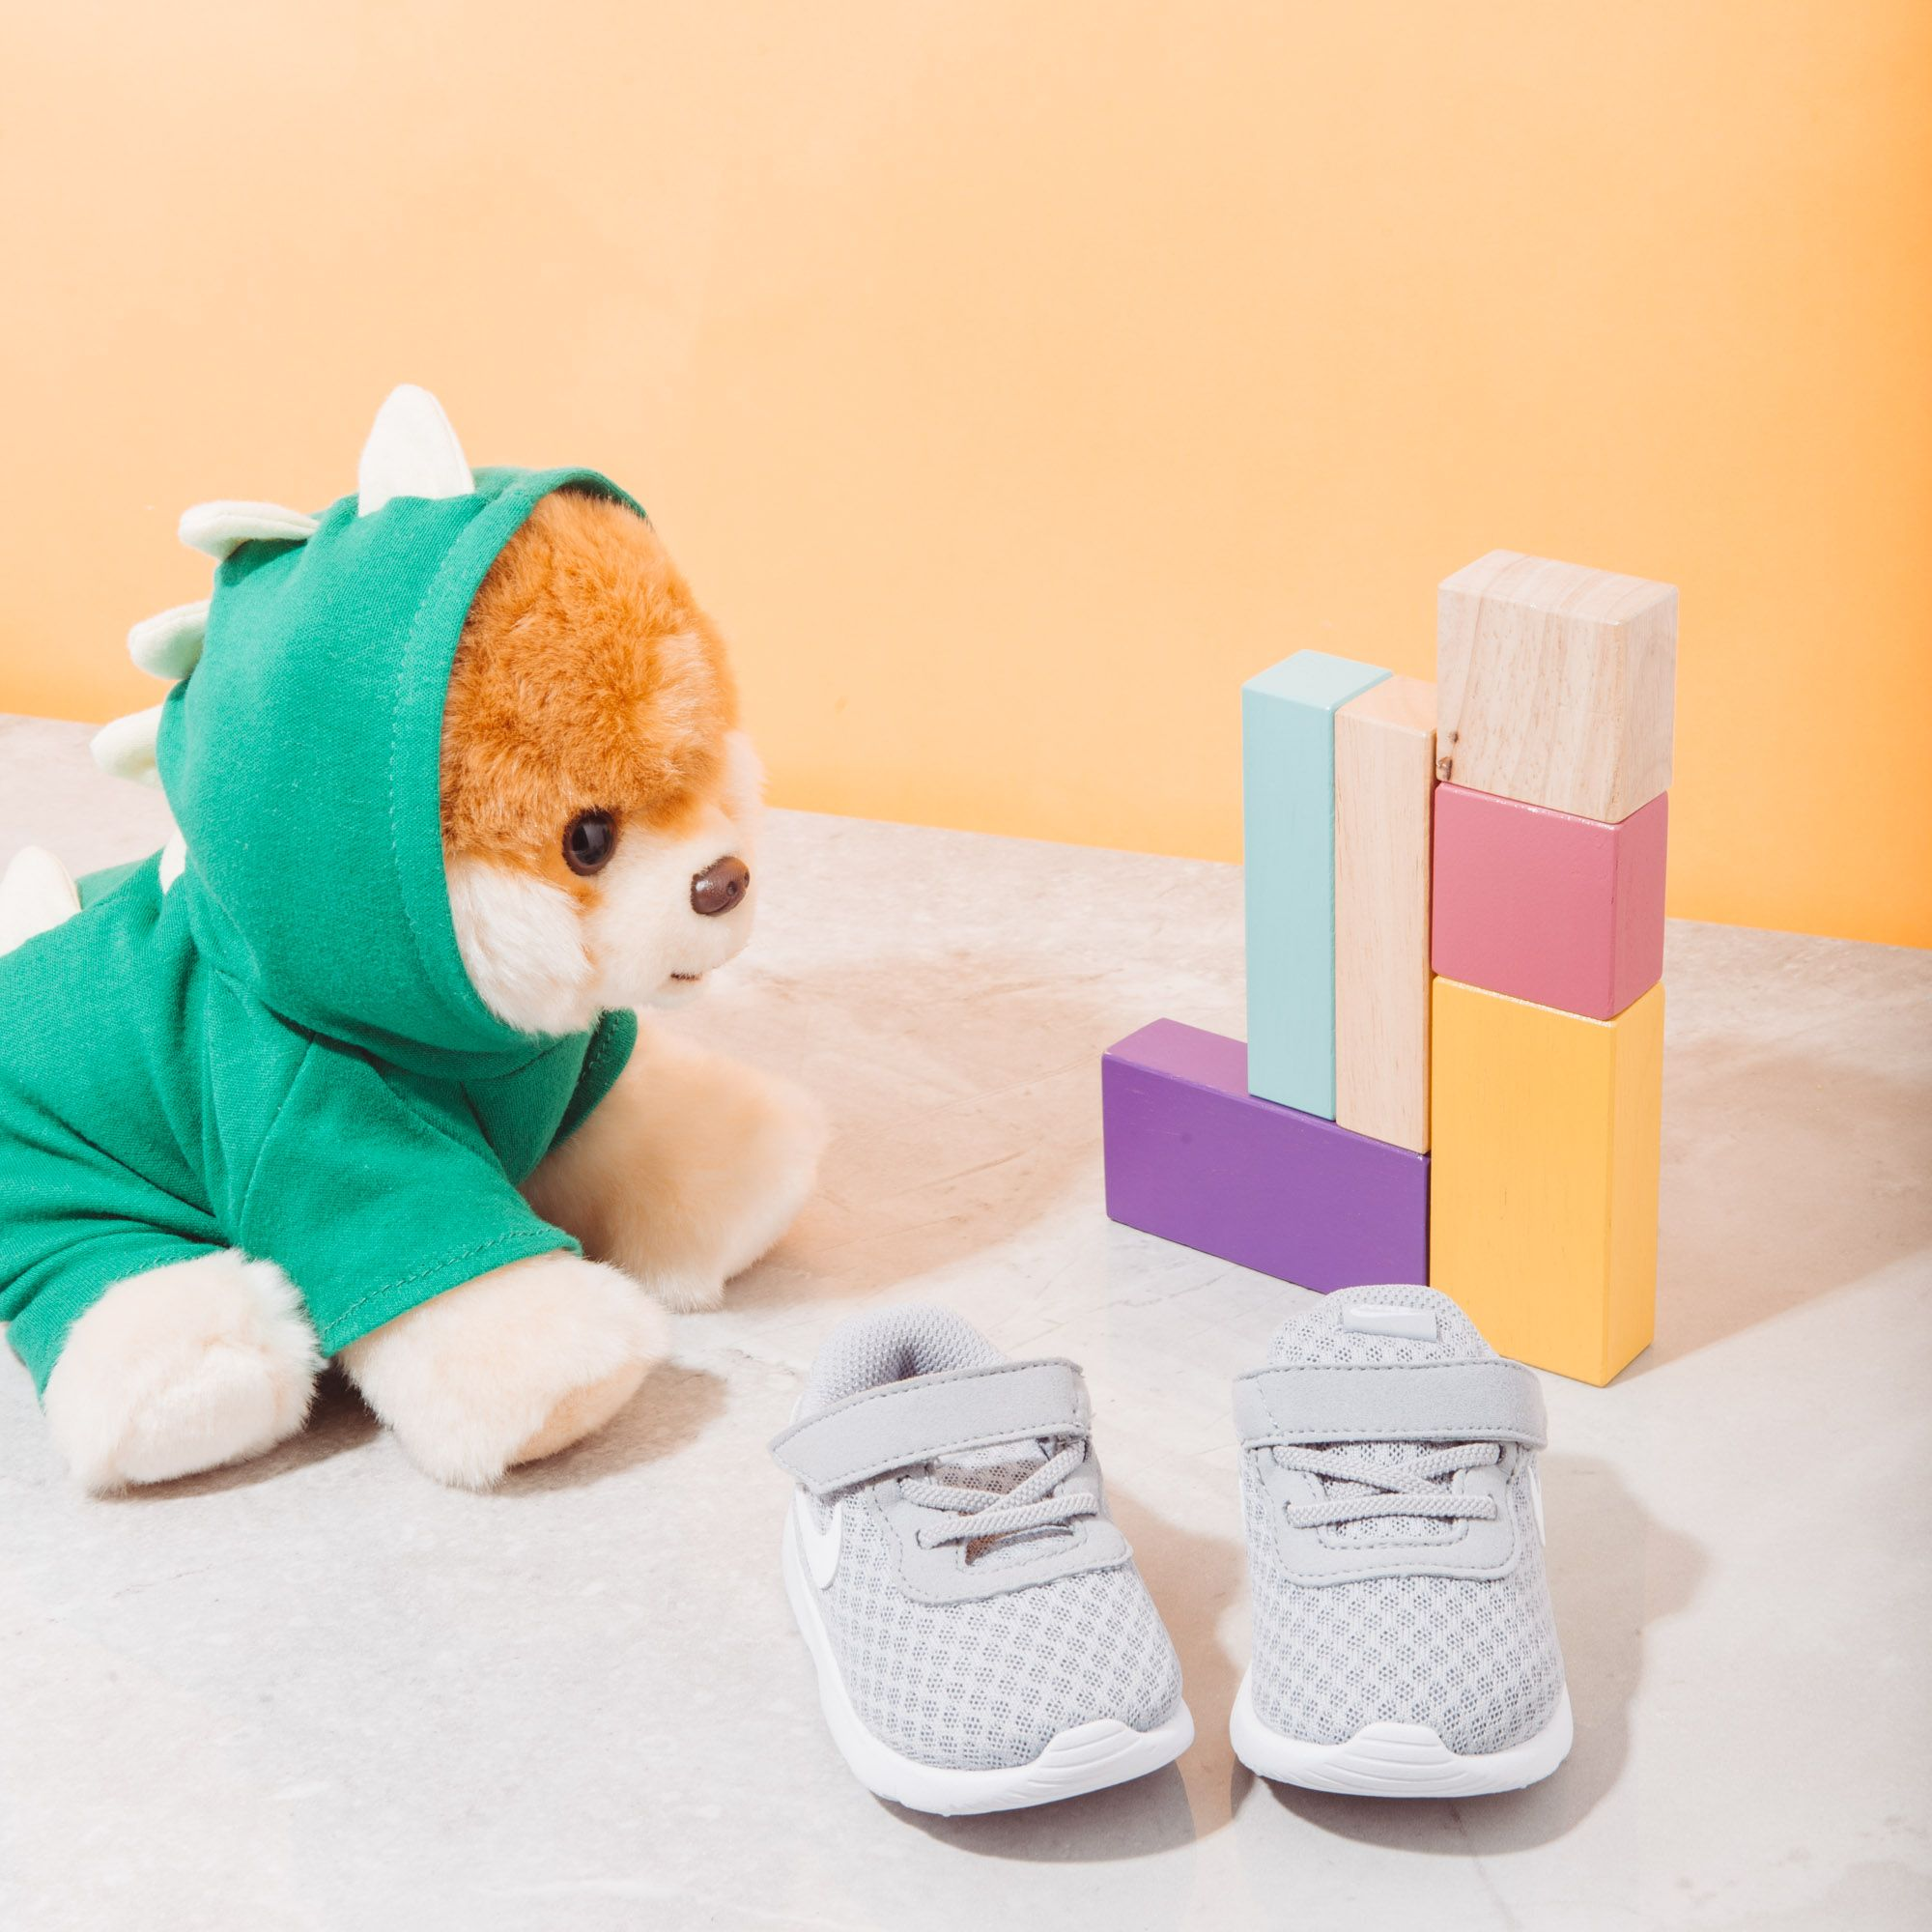 5763baedd1a15 Tiny feet call for tiny Nike shoes! Your baby will love them as much as you  do! Check our Children's section until May 8 and get some sweet deals!